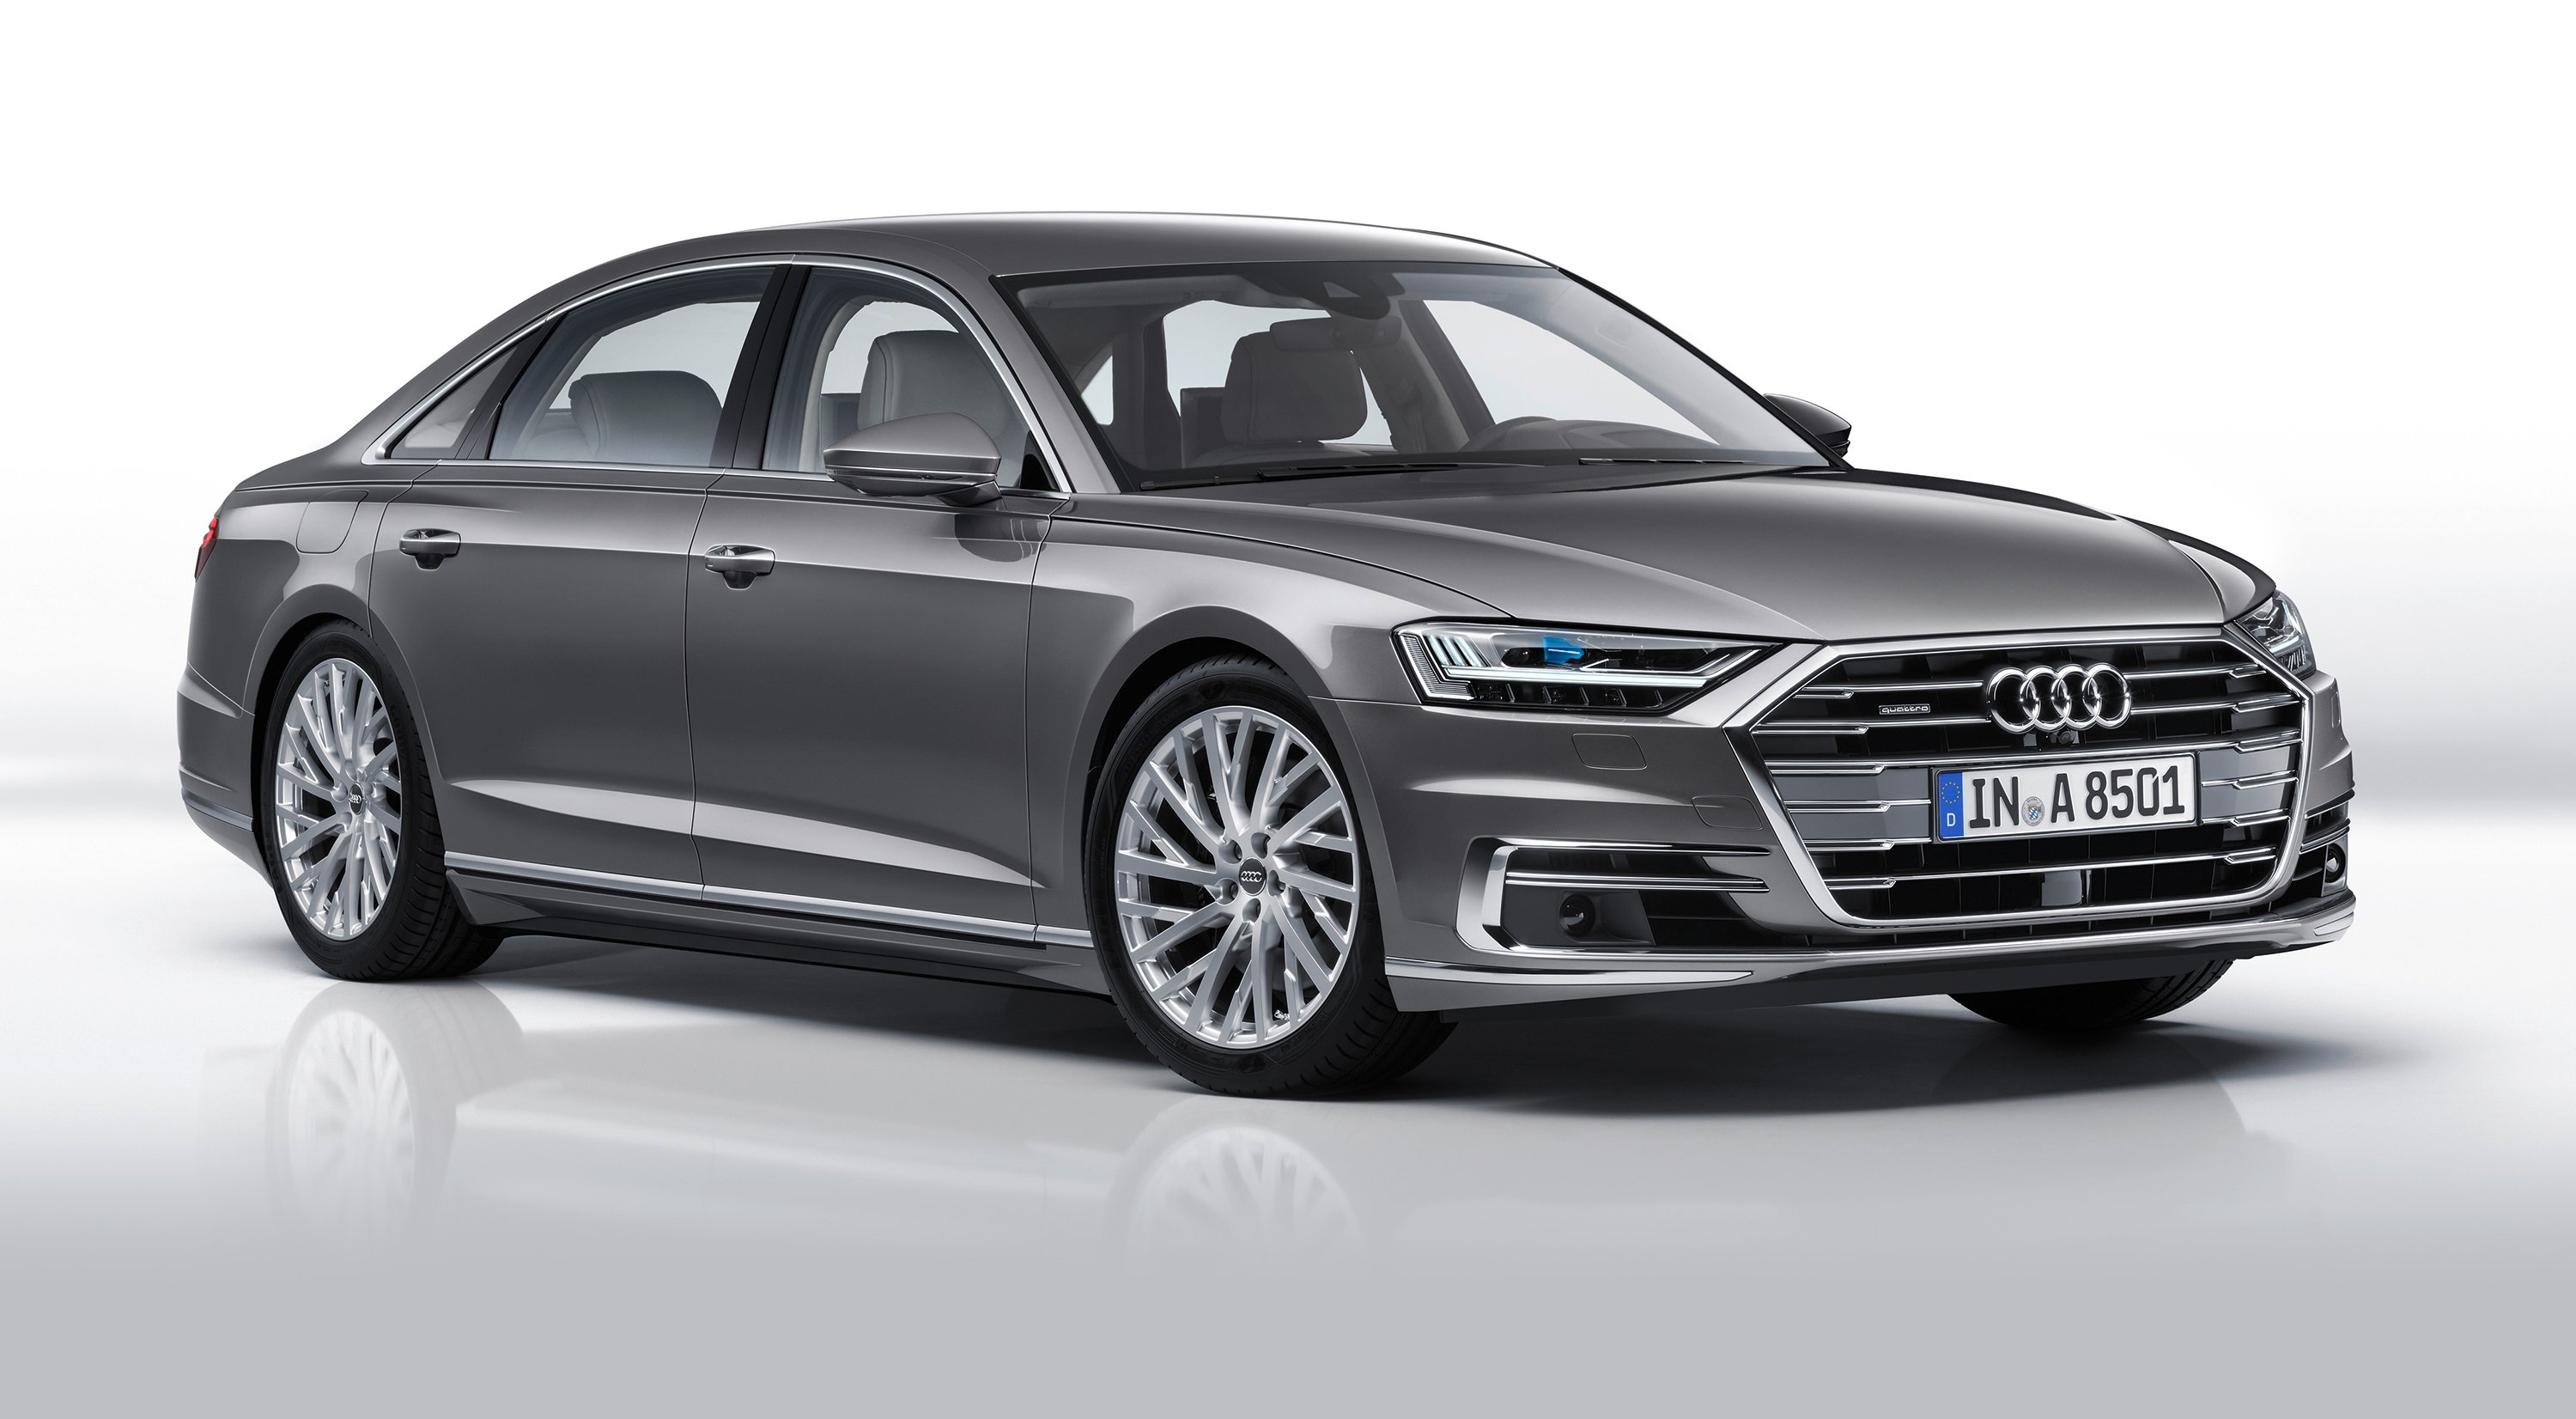 2018 Audi A8 revealed, in Australia from mid-year - Photos (1 of 46)